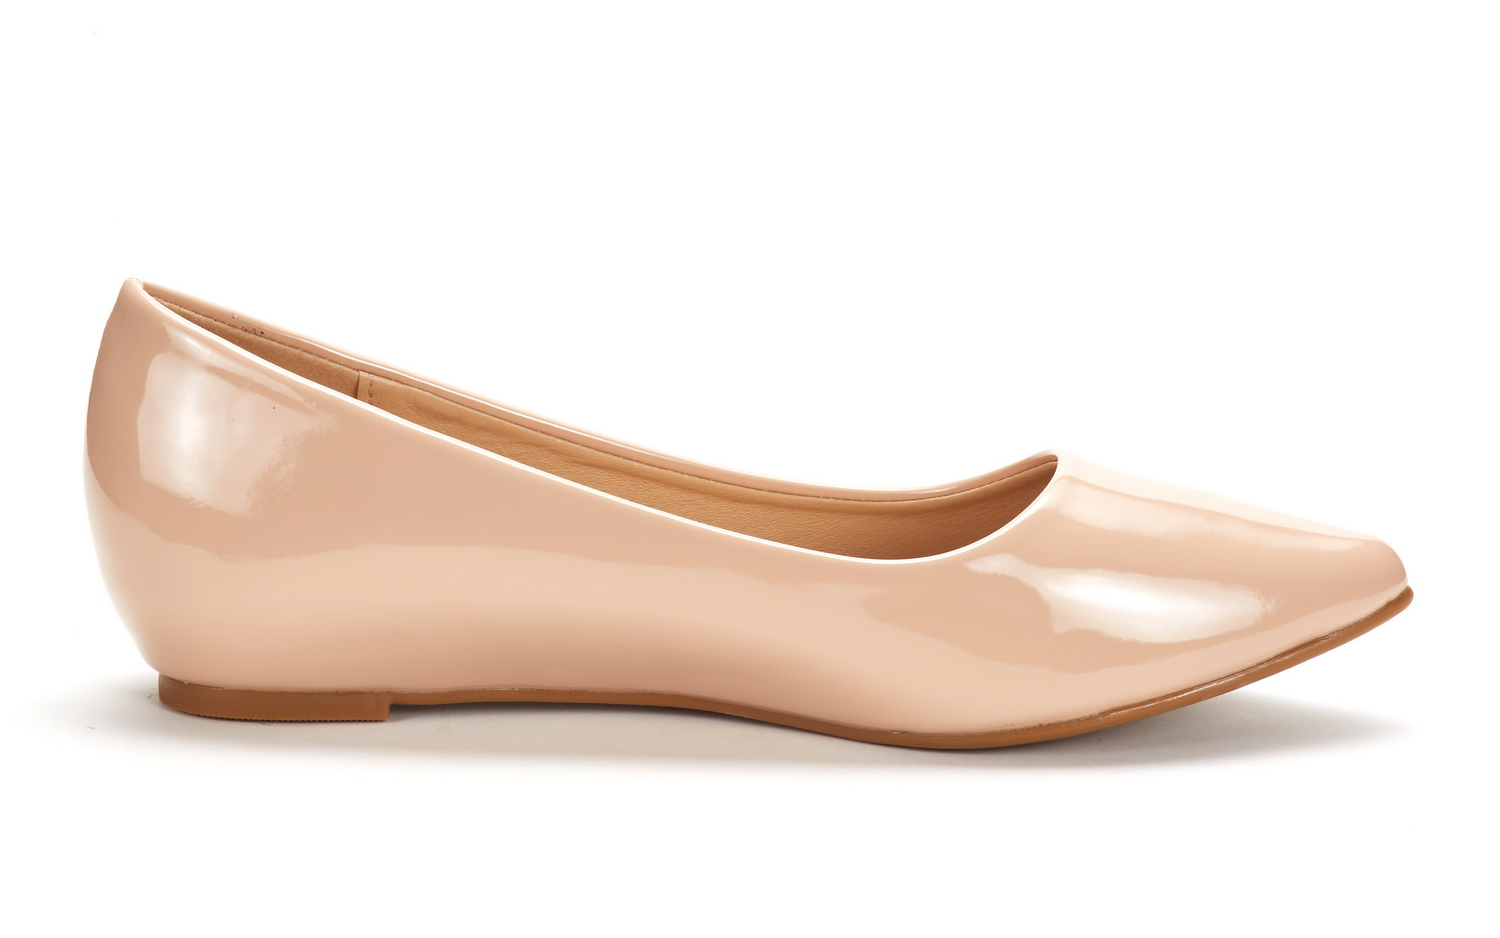 DREAM-PAIRS-Women-Low-Wedge-Flats-Ladies-Pointed-Toe-Slip-On-Comfort-Flat-Shoes thumbnail 88